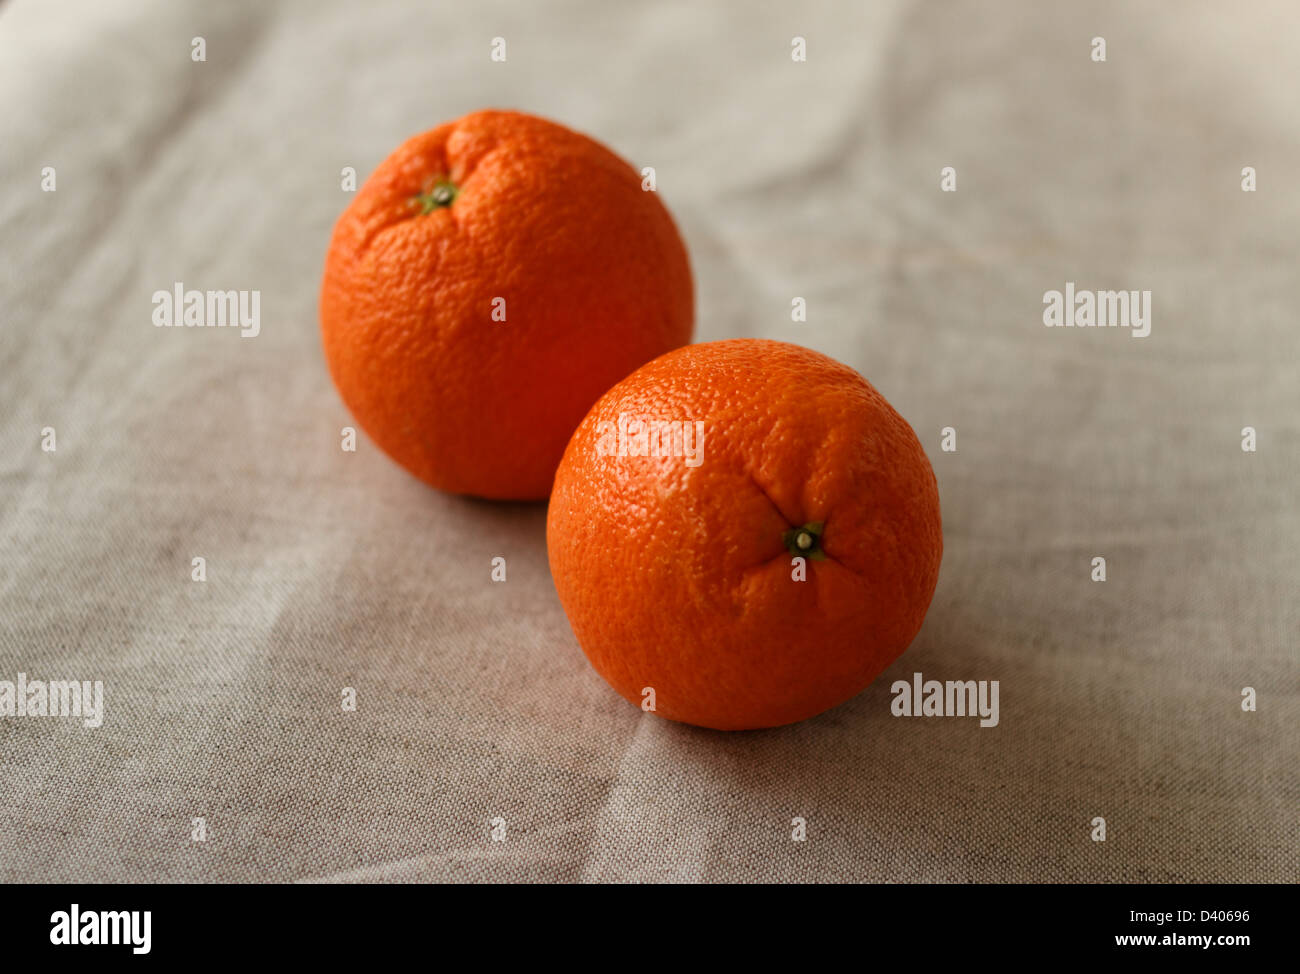 Two oranges on a linen cloth background - Stock Image